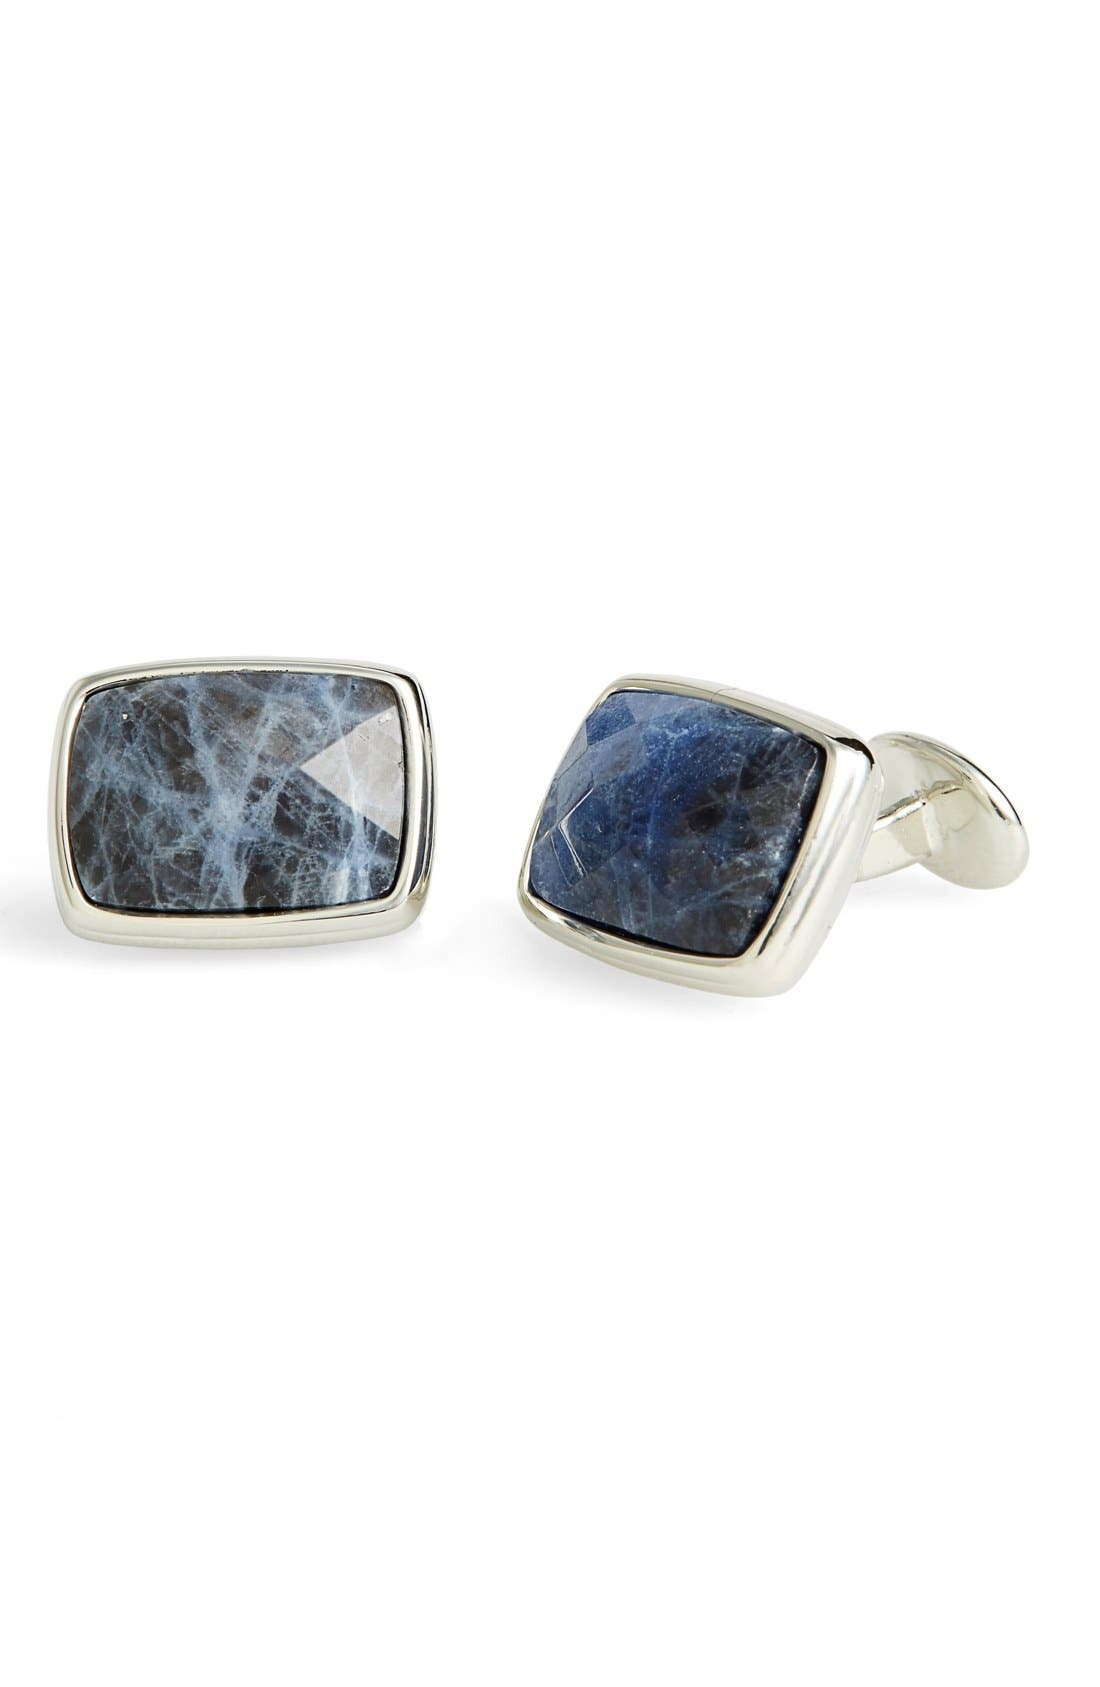 Alternate Image 1 Selected - David Donahue Sodalite Cuff Links